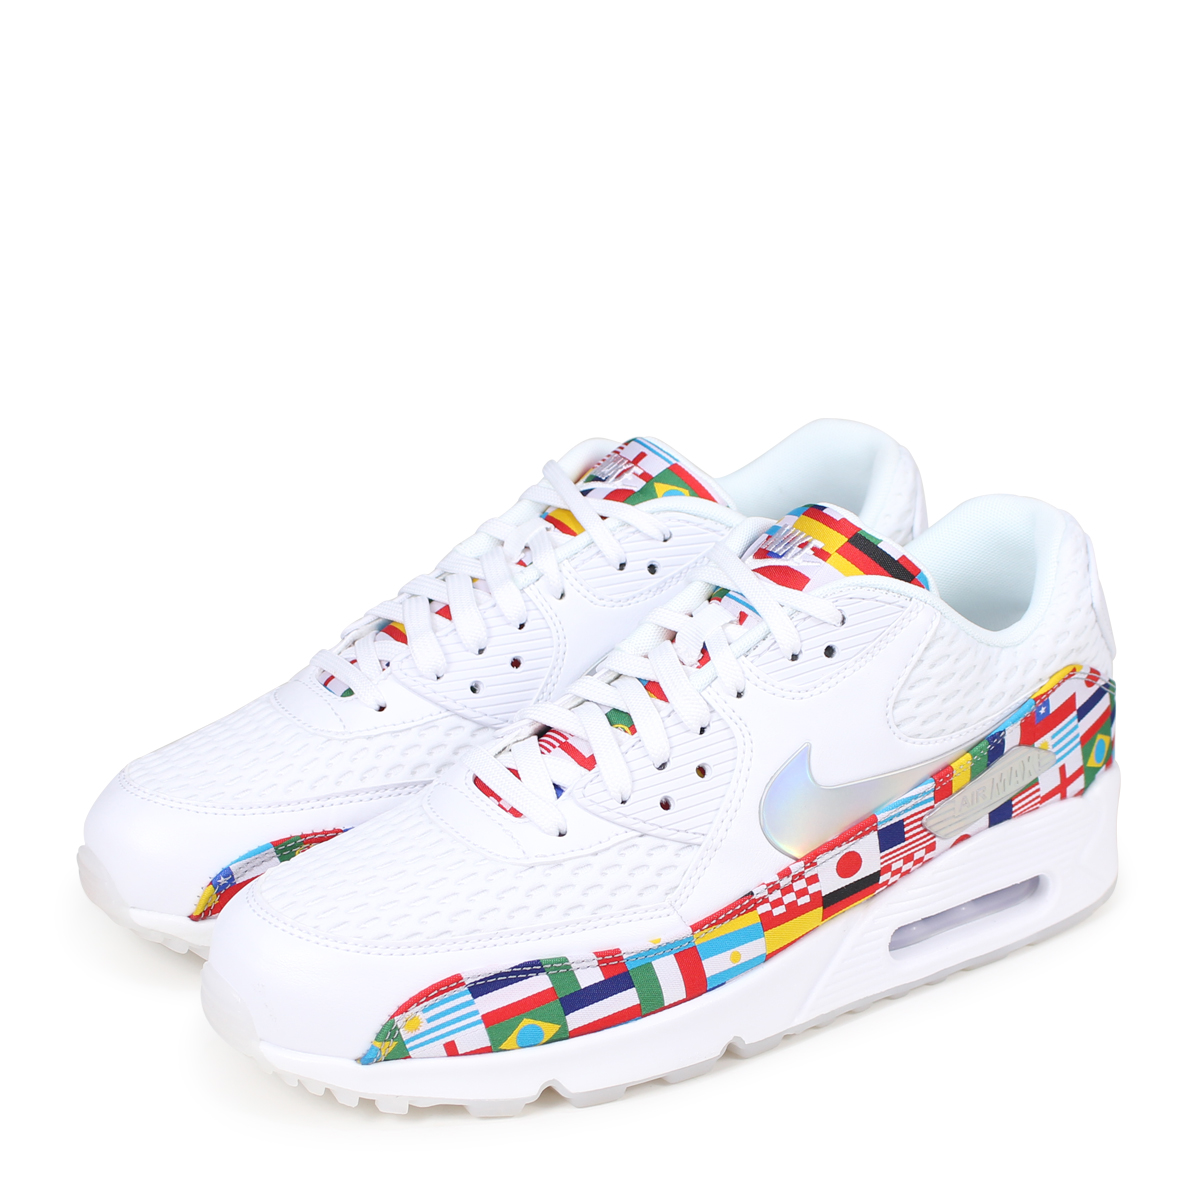 online store e3421 780da NIKE AIR MAX 90 NIC QS Kie Ney AMAX 90 sneakers men AO5119-100 white [load  planned Shinnyu load in reservation product 6/16 containing] [186]